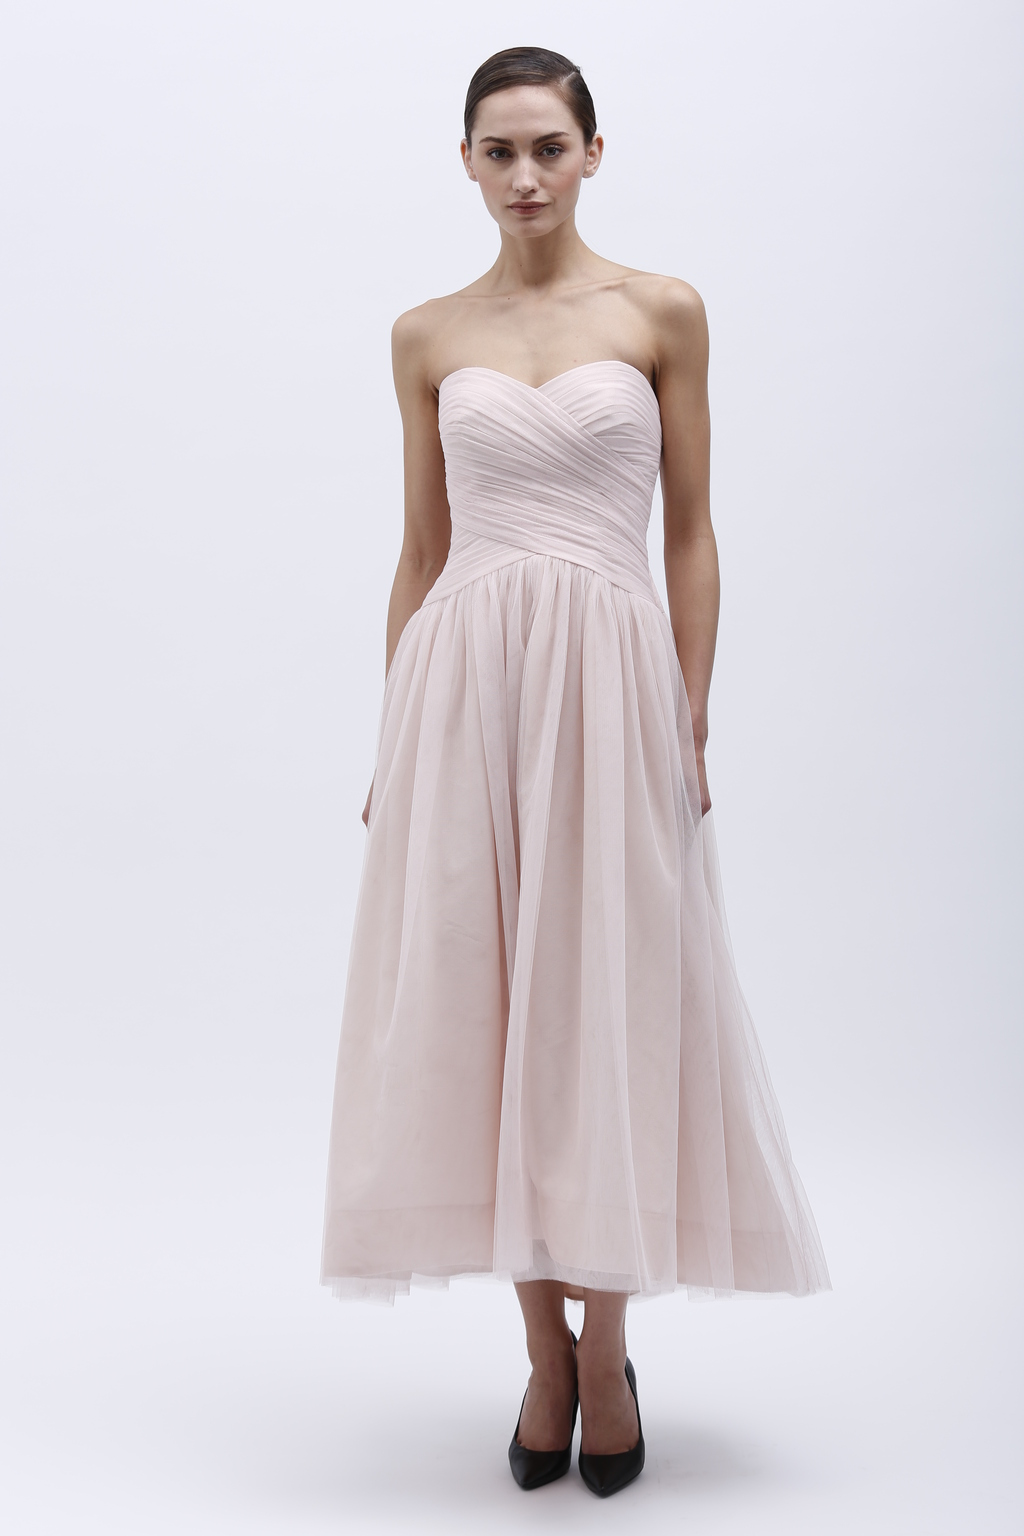 Monique-lhuillier-spring-2014-bridesmaid-dress-450160_blush.full